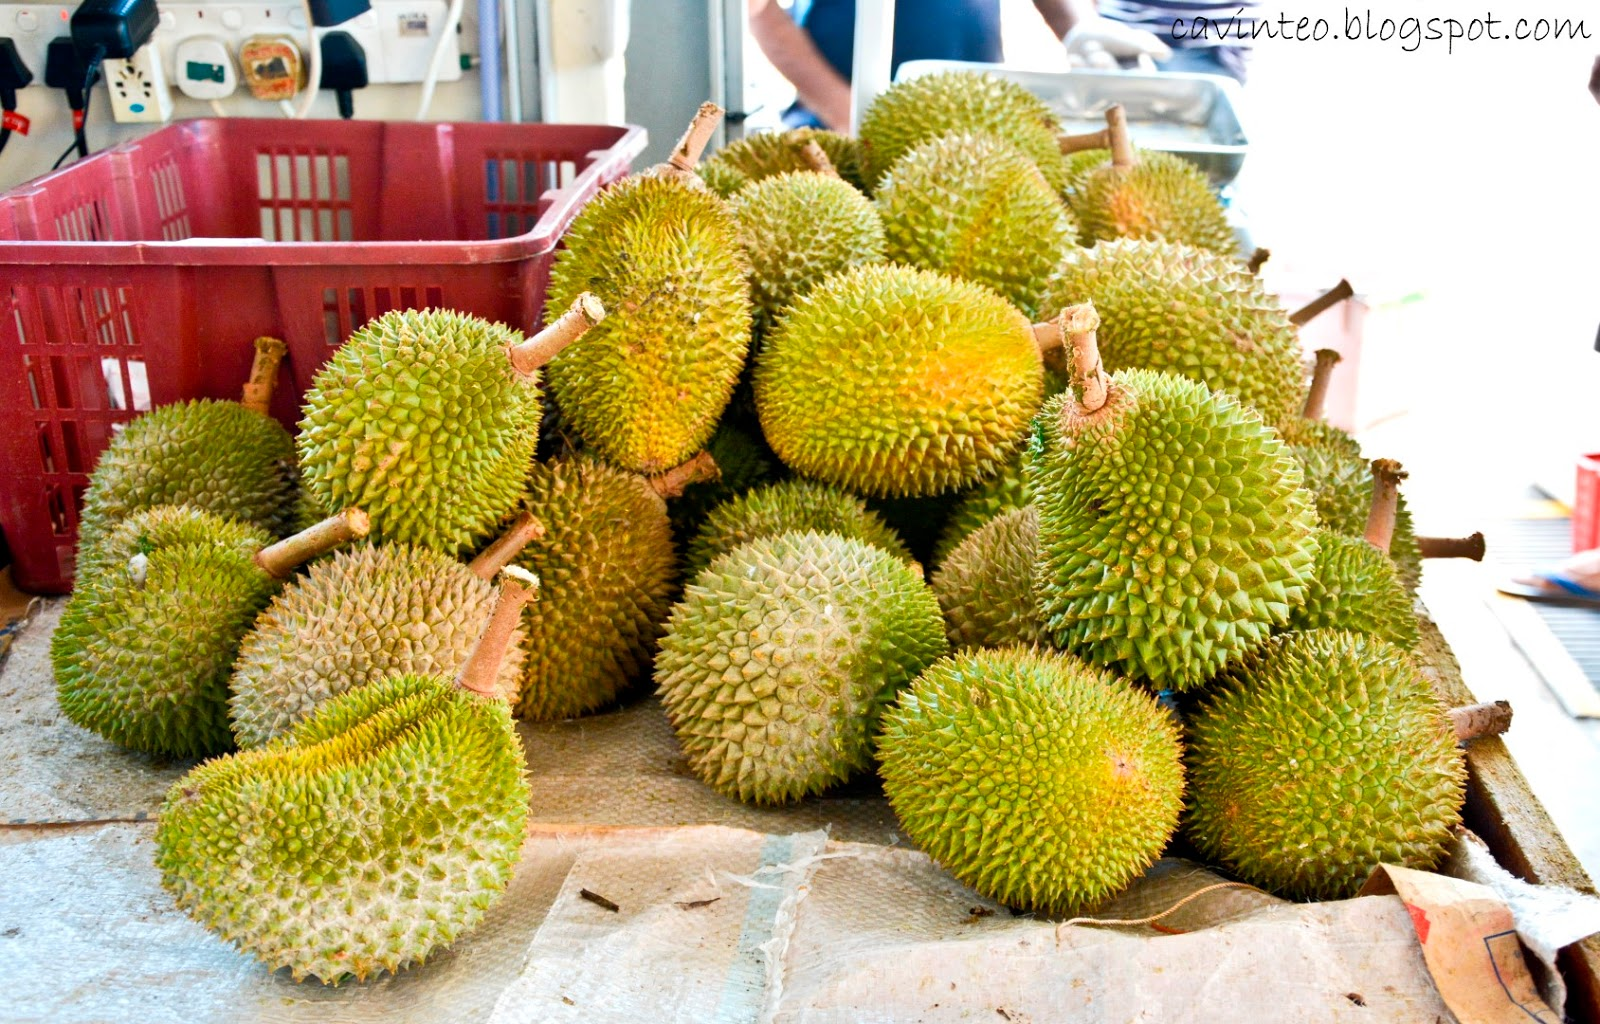 entree kibbles ah seng durian the place for durians in the west ghim moh temporary. Black Bedroom Furniture Sets. Home Design Ideas